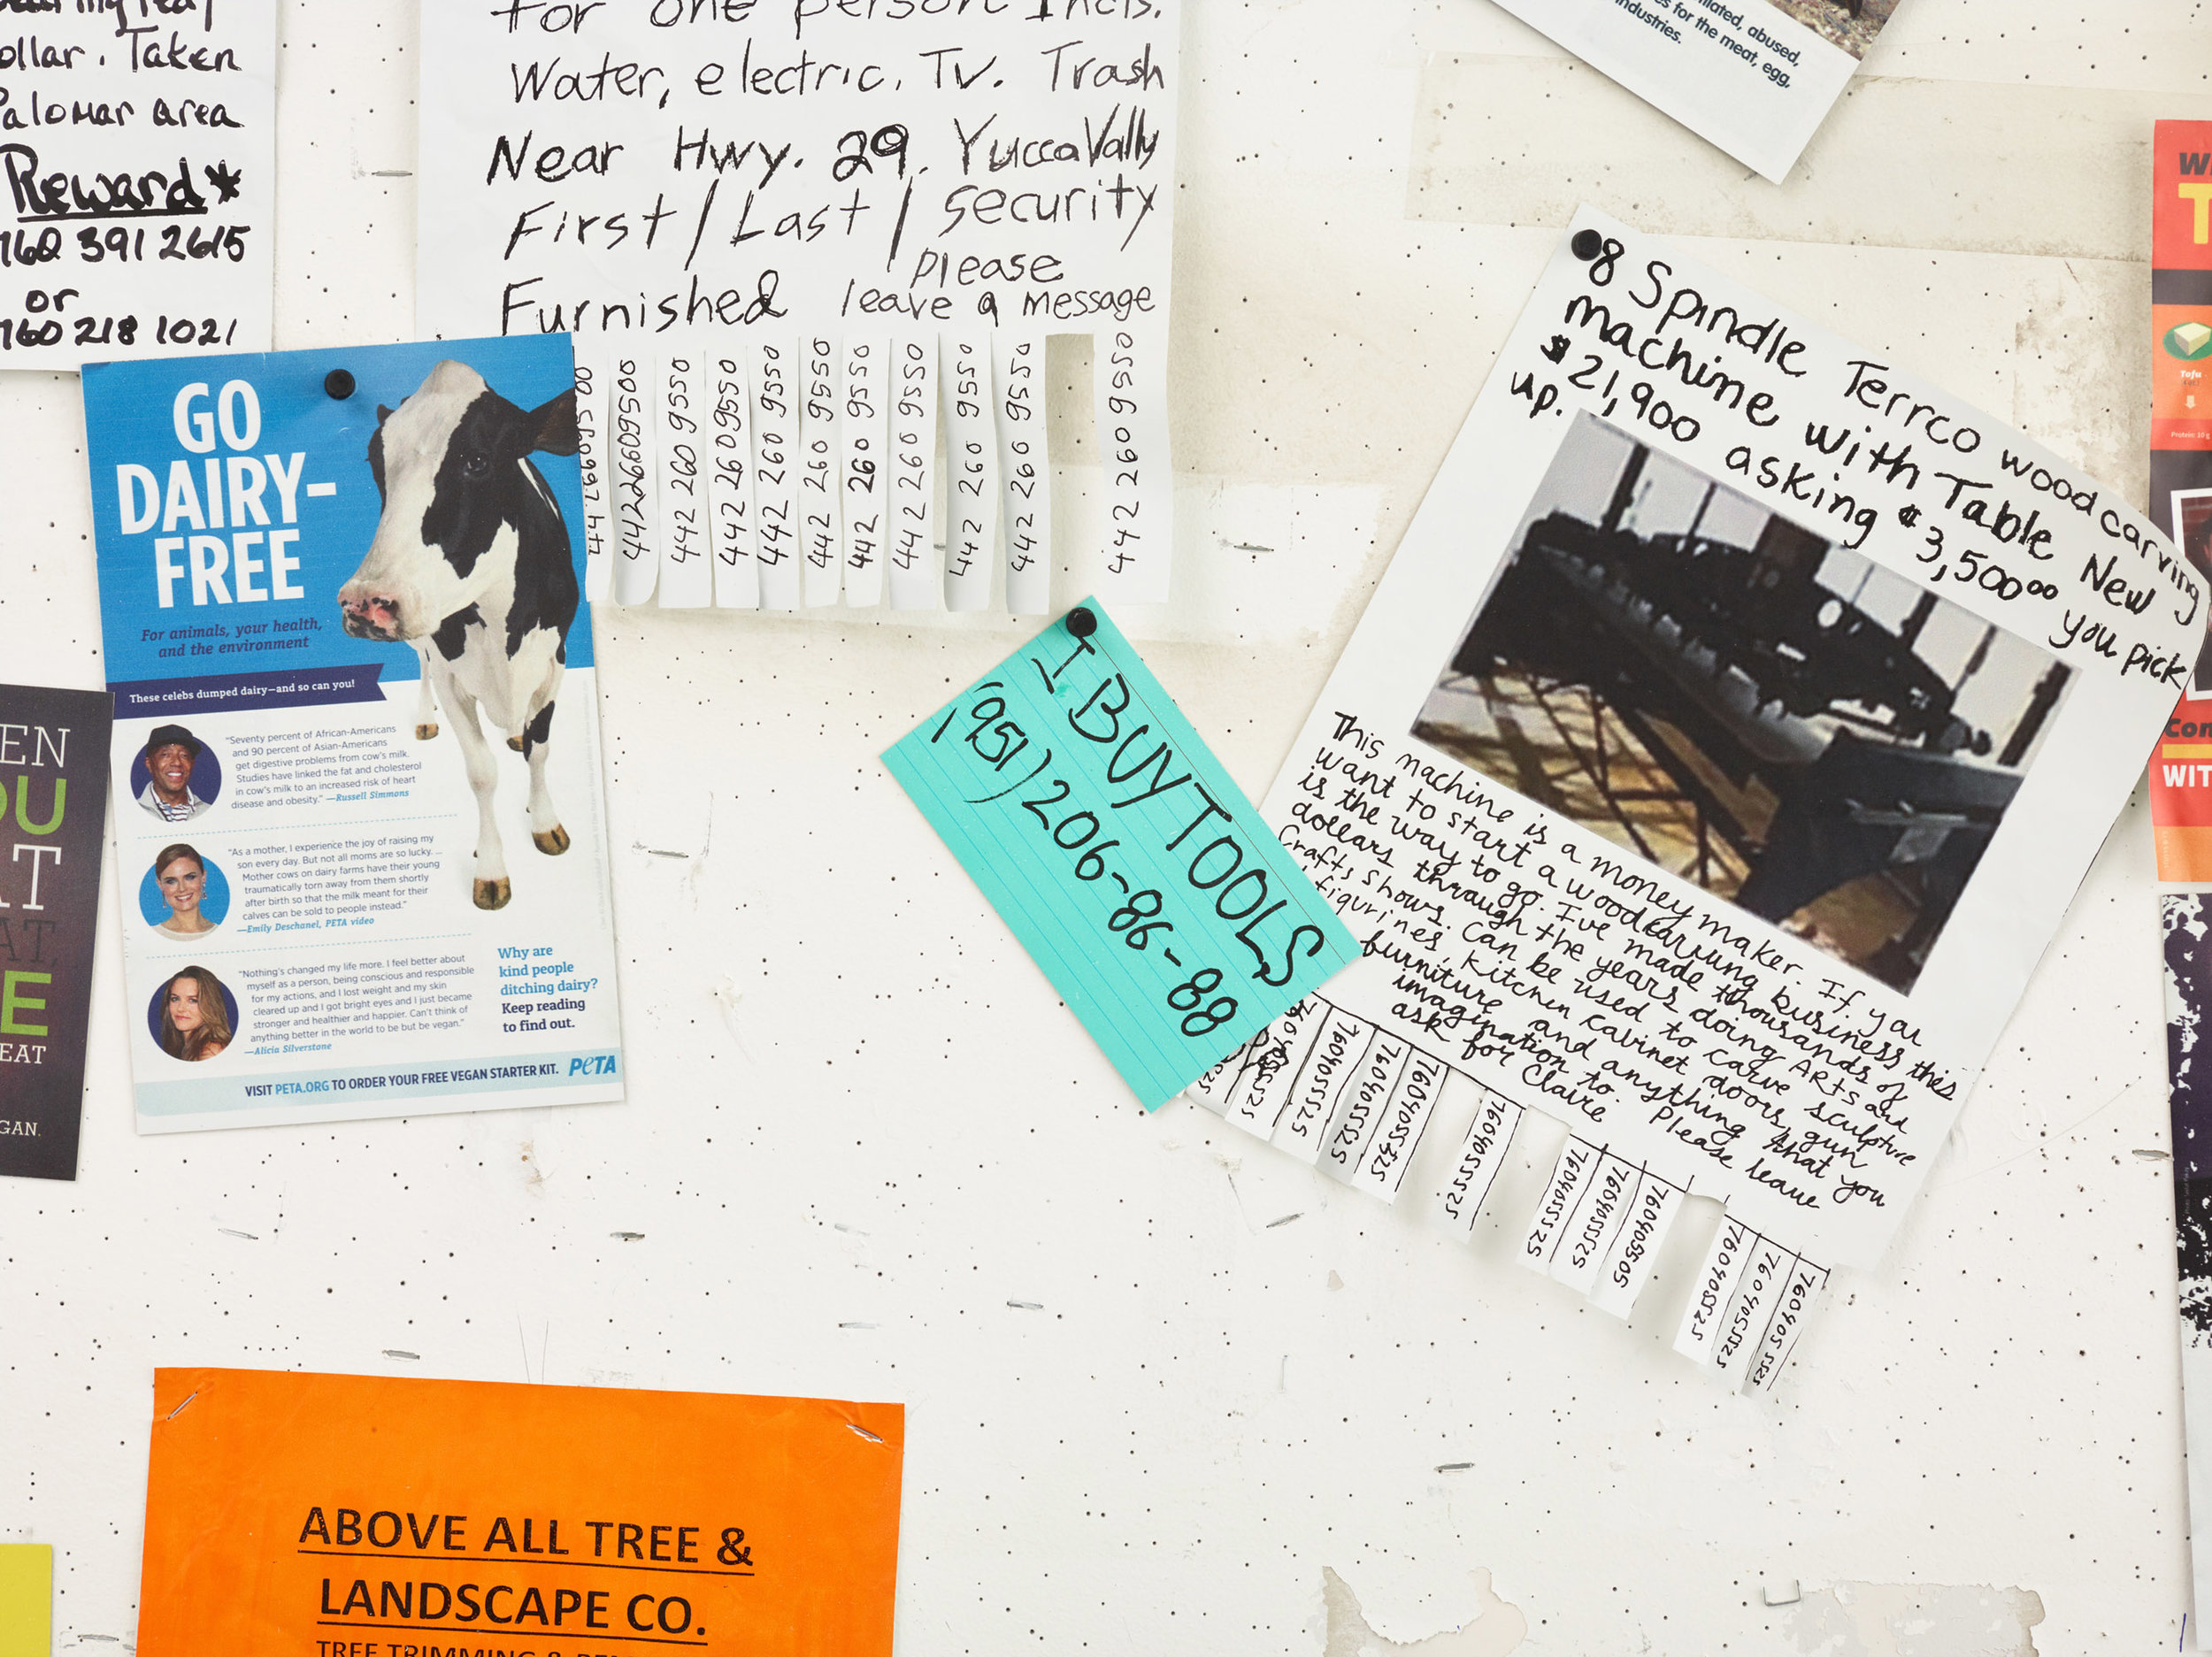 7 outside of all places; fiona connor's sculpture; oscar capezio   Fiona Connor,  Community Notice Board (Cleaning Coop) , 2018, detail; plasterboard, acrylic, silkscreen and UV prints on aluminium, staples, pins, 122 x 214 x 8cm; image courtesy the artist and Fine Arts, Sydney